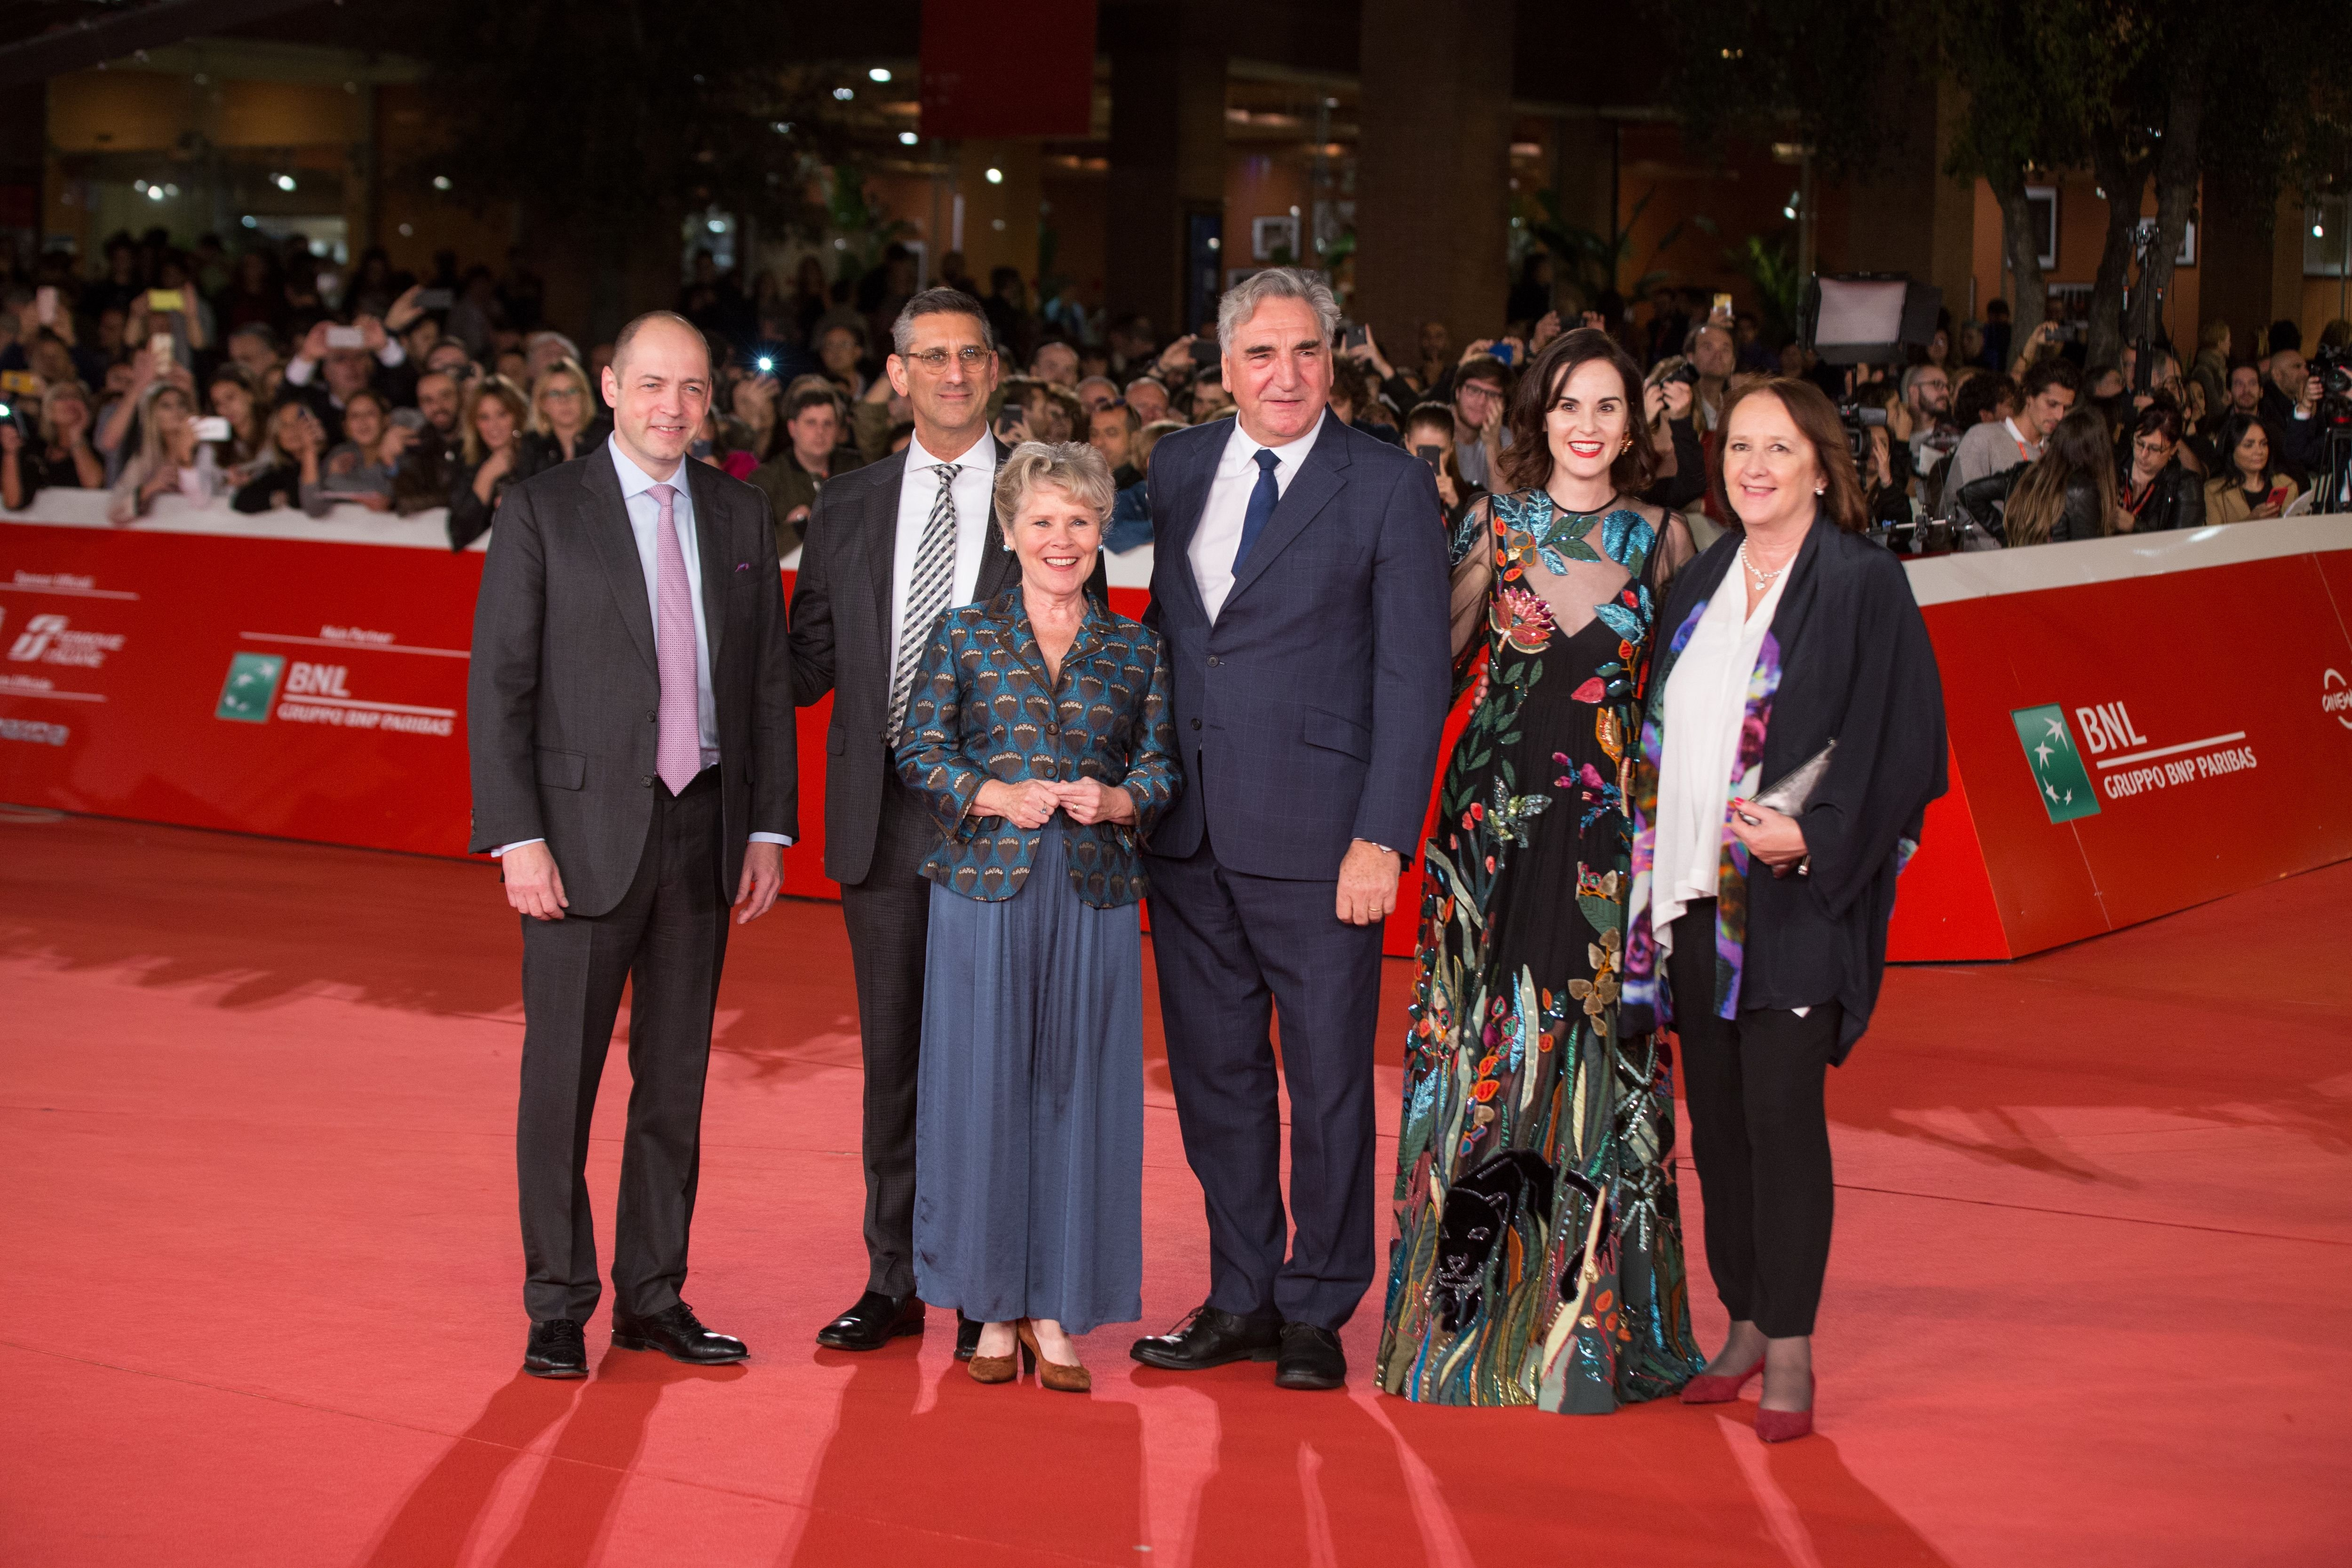 """The Cast of """"Downton Abbey"""" at the red carpet at the Rome Film Fest on  October 19, 2019 